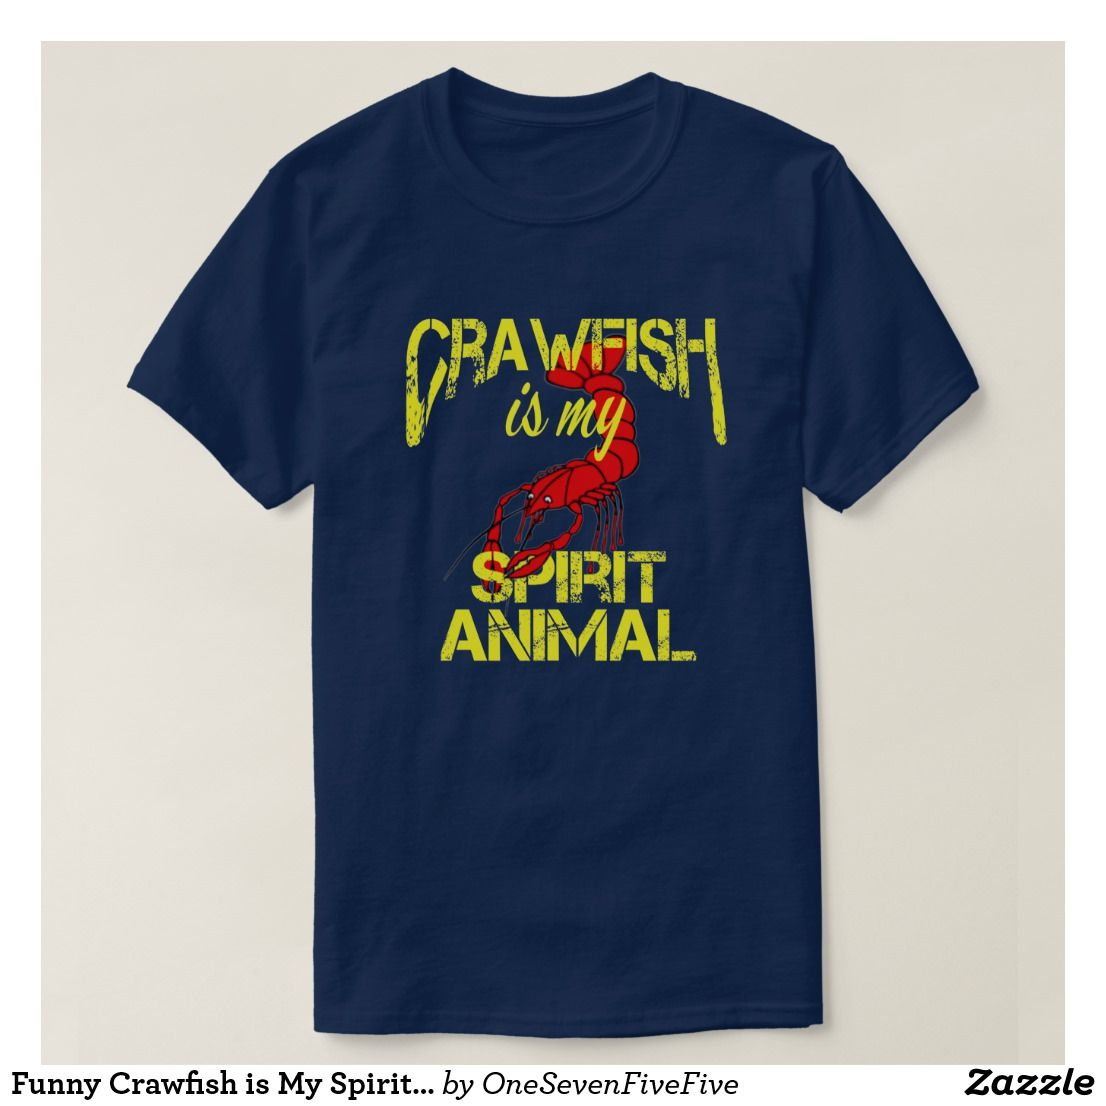 6c6869bb07 Funny Crawfish is My Spirit Animal Louisiana Cajun T-Shirt Whether you are  Louisiana born and raised, or live in Texas or Mississippi, you know there  is ...